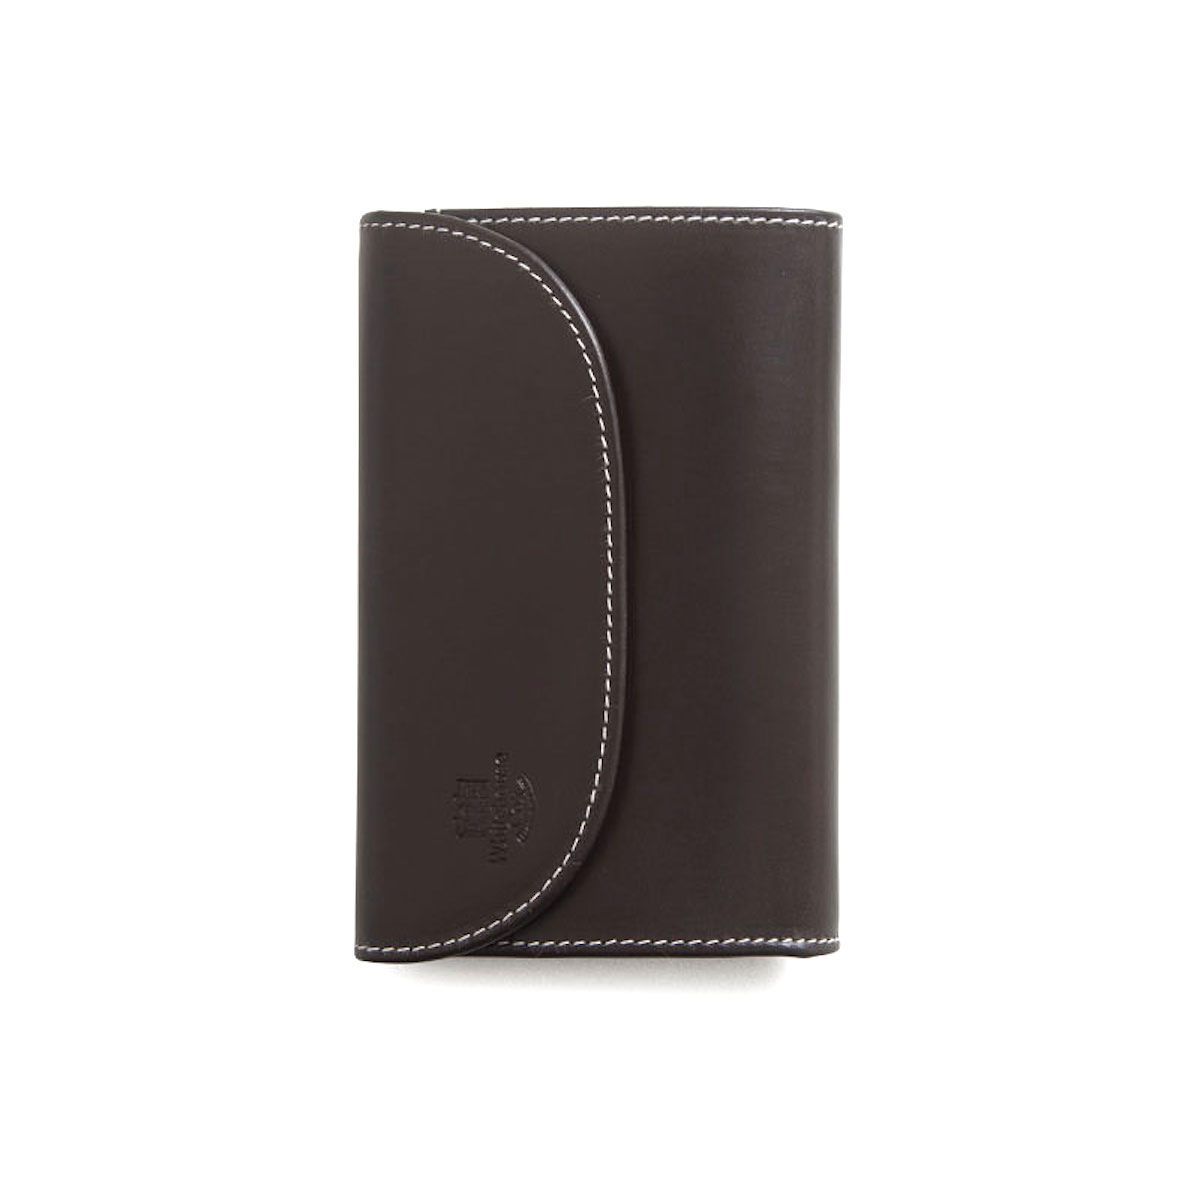 WHITEHOUSE COX / S7660 3FOLD WALLET (Espresso×Yellow)